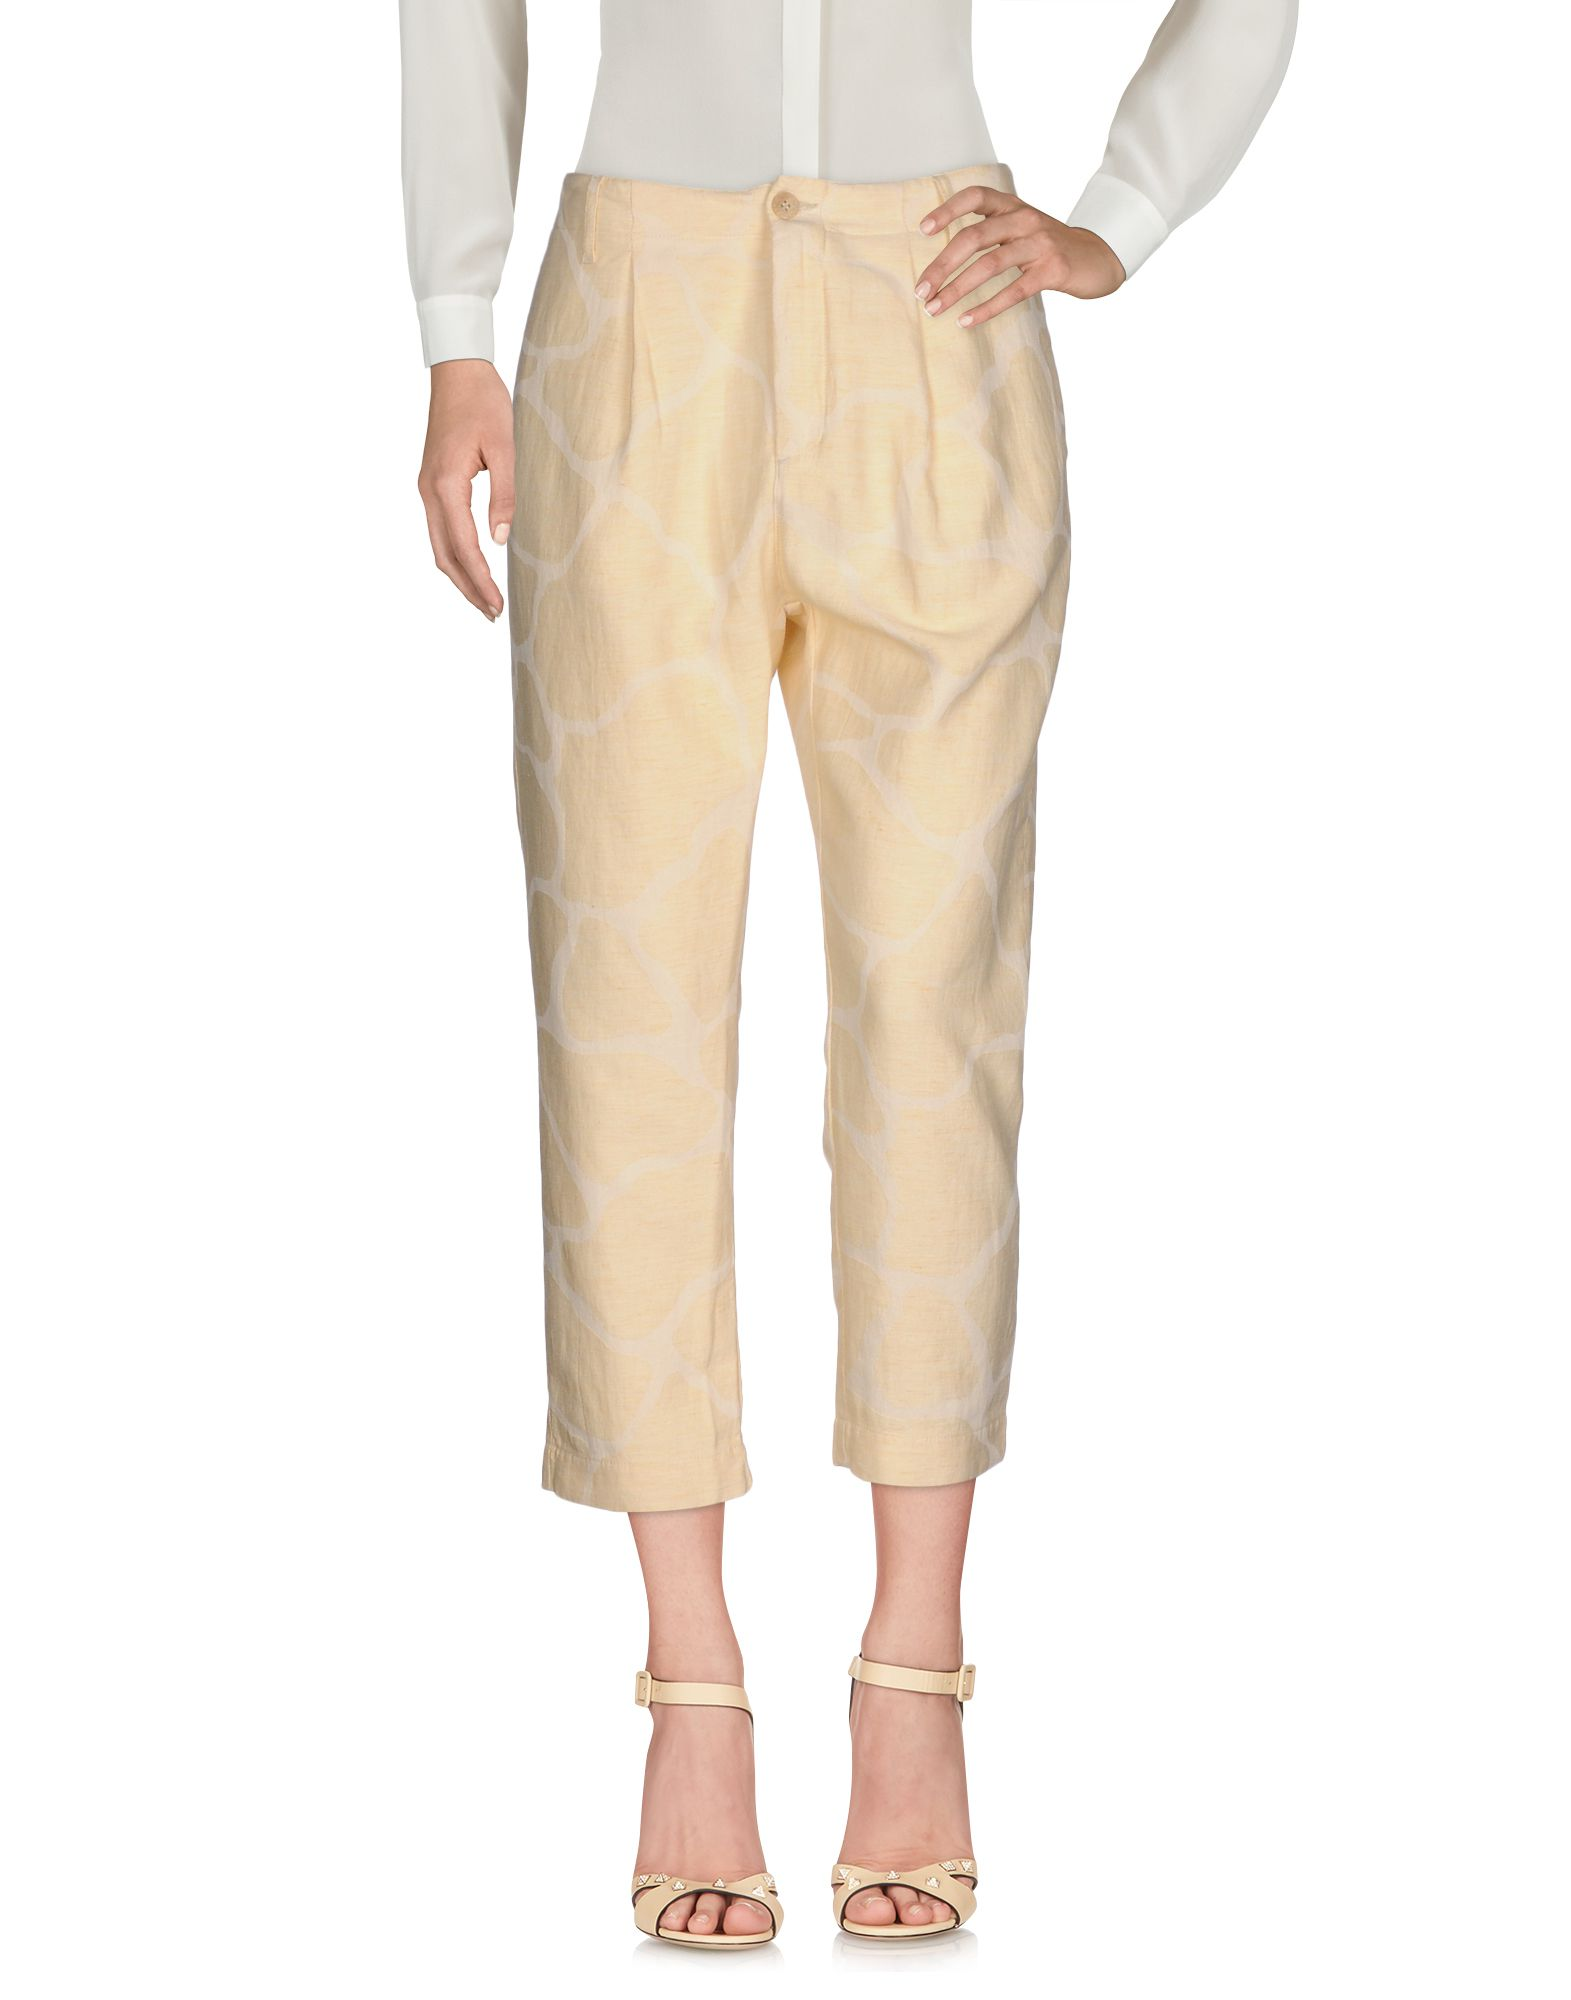 NOVEMB3R Cropped Pants & Culottes in Beige